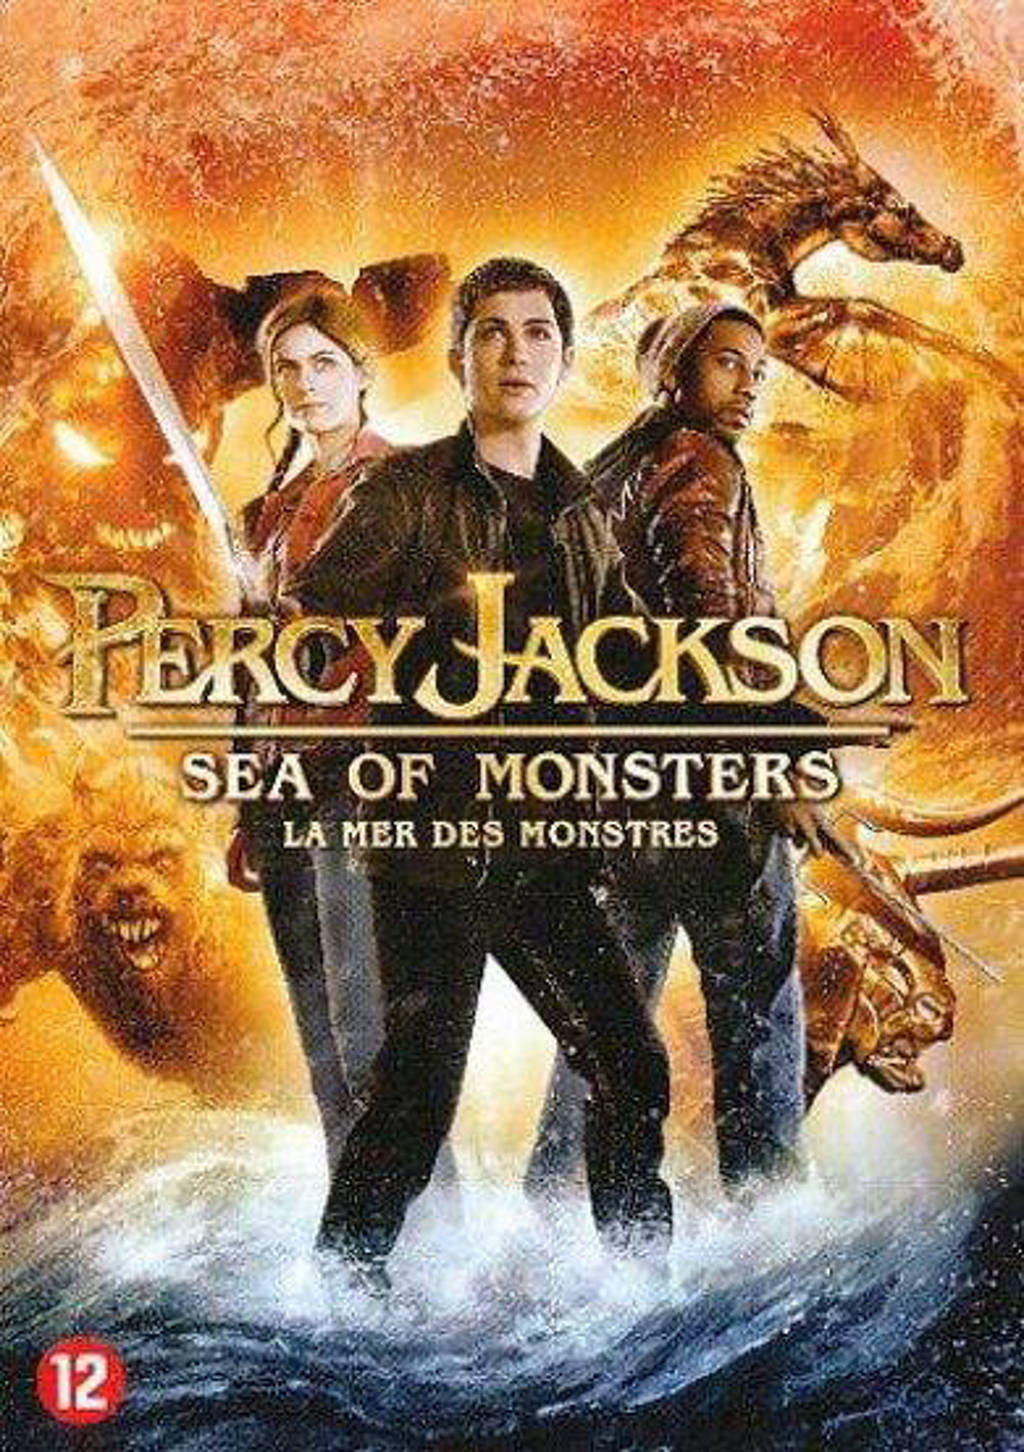 Percy Jackson - Sea of monsters (DVD)